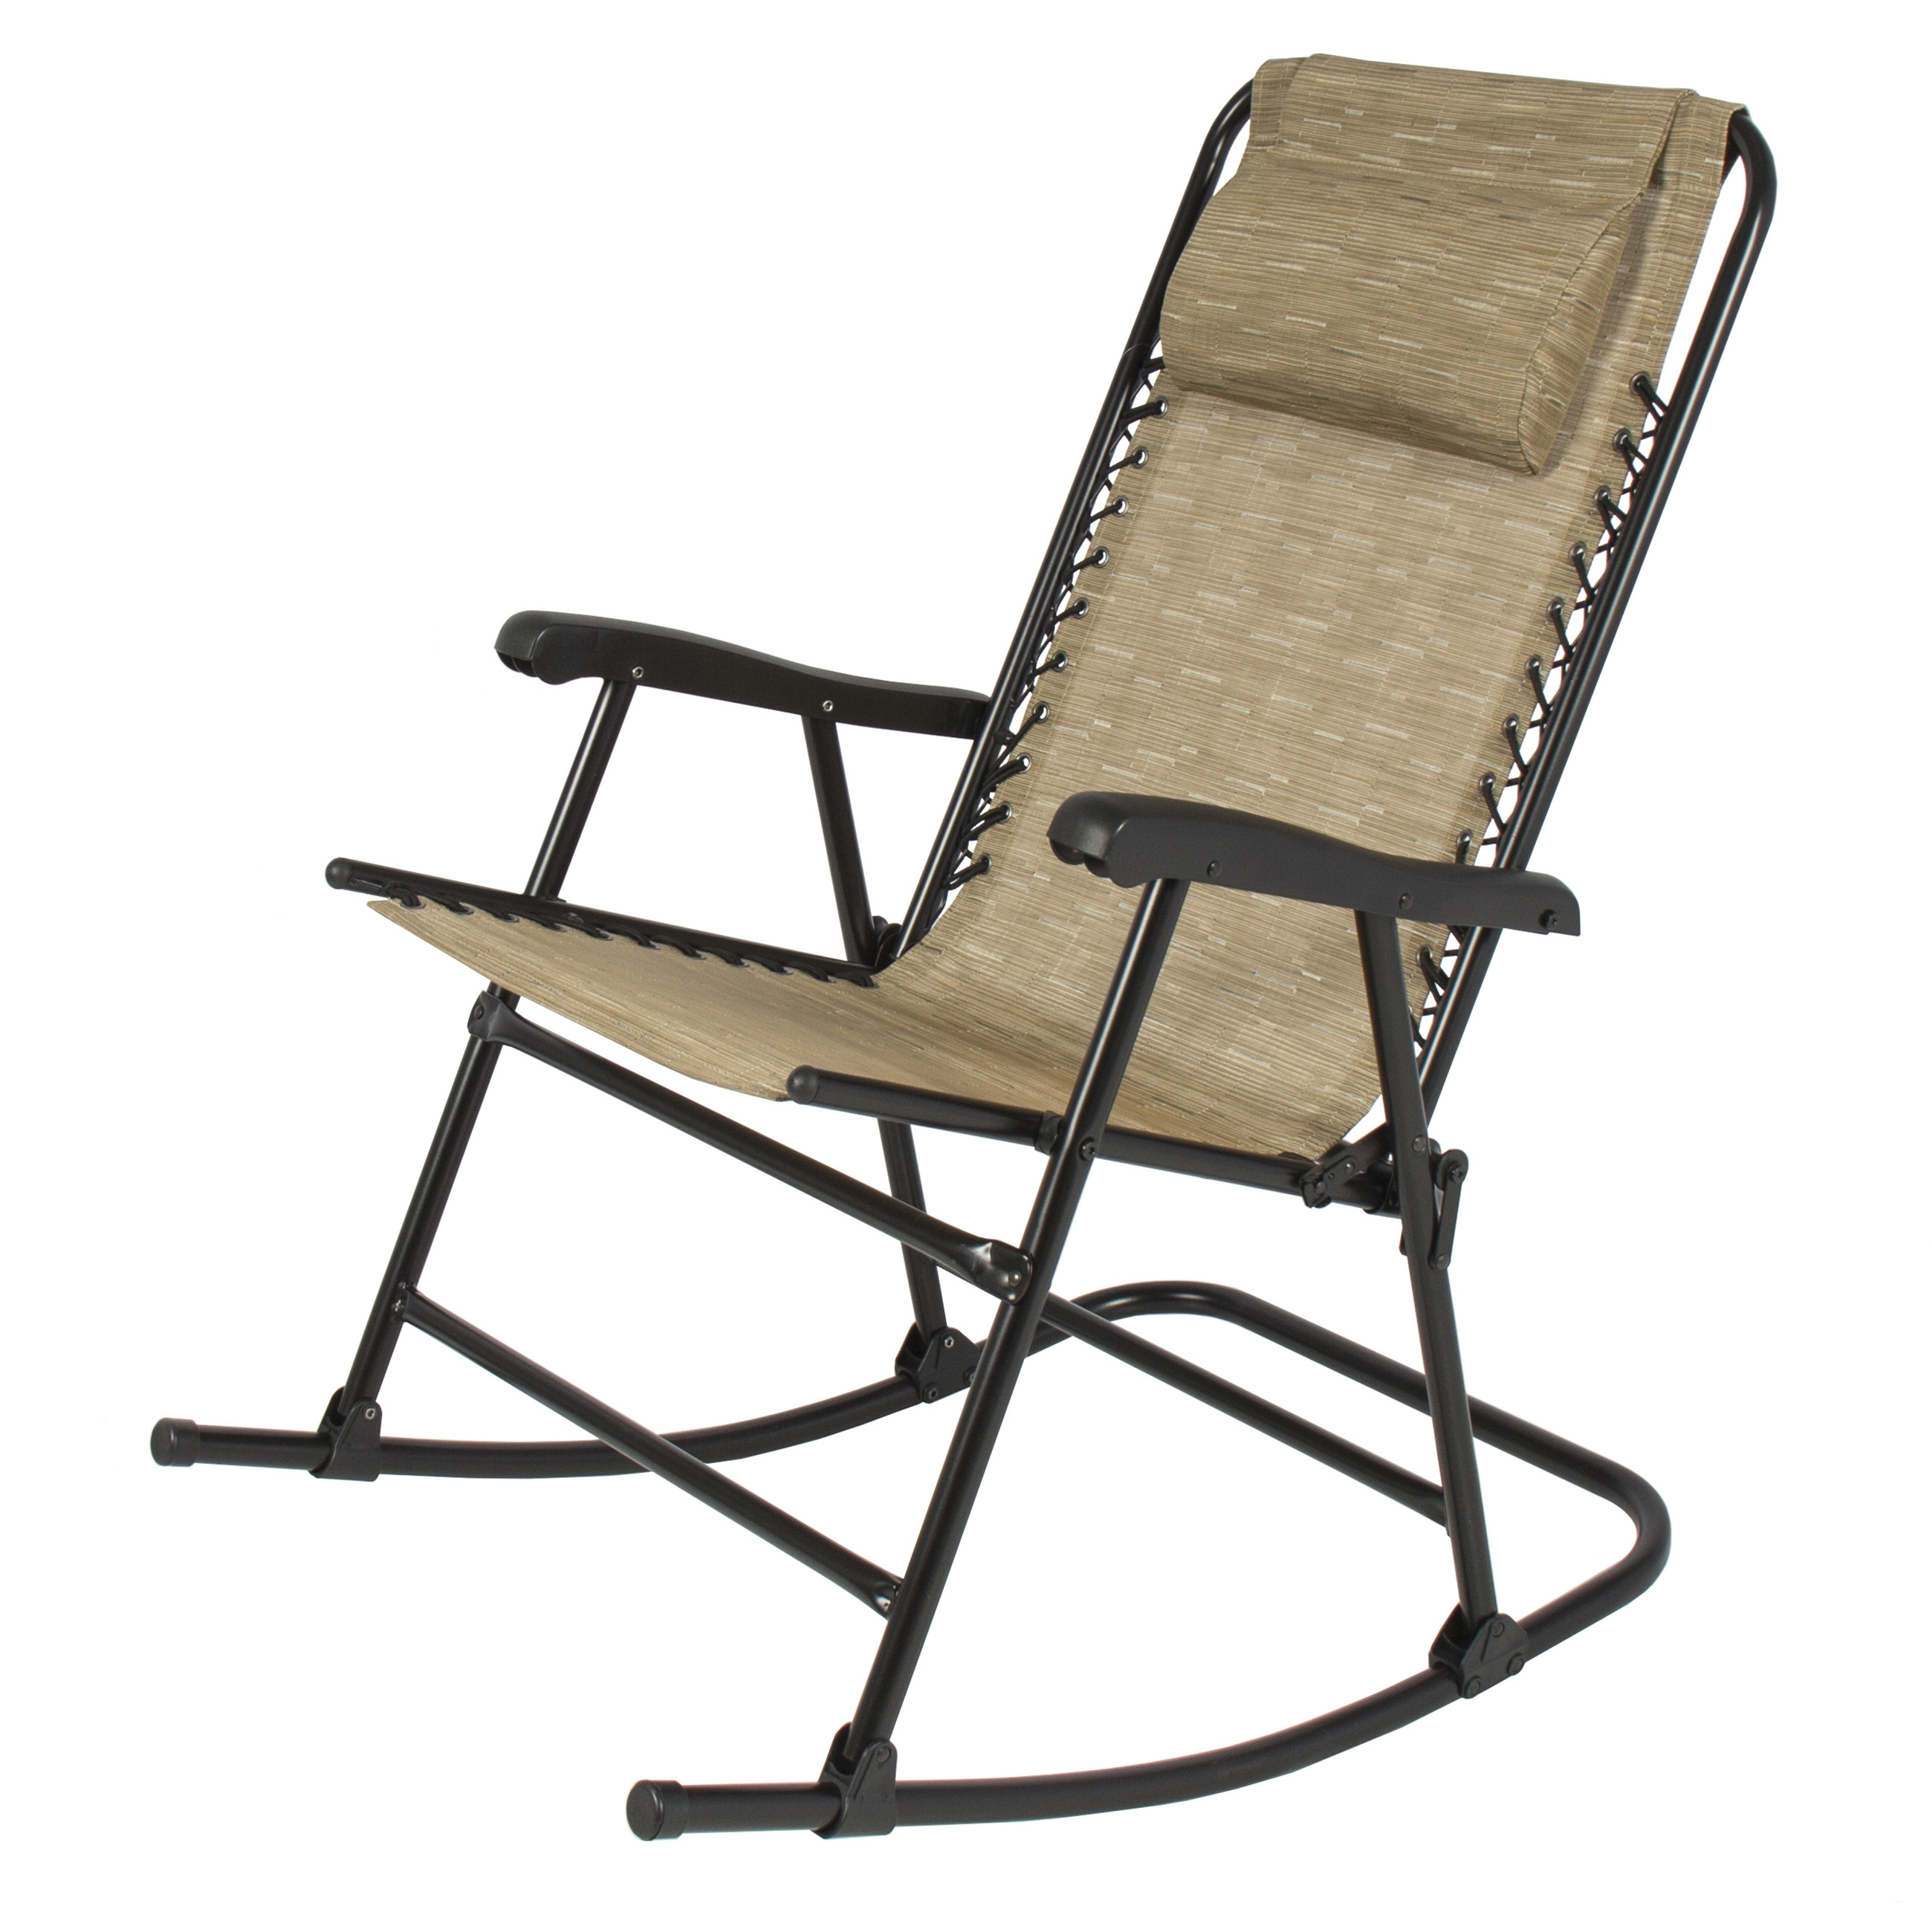 Widely Used Outdoor Patio Rocking Chairs Inside Red Outdoor Rocking Chair – Nice Chair Lovely Patio Rocking Chairs (View 14 of 15)